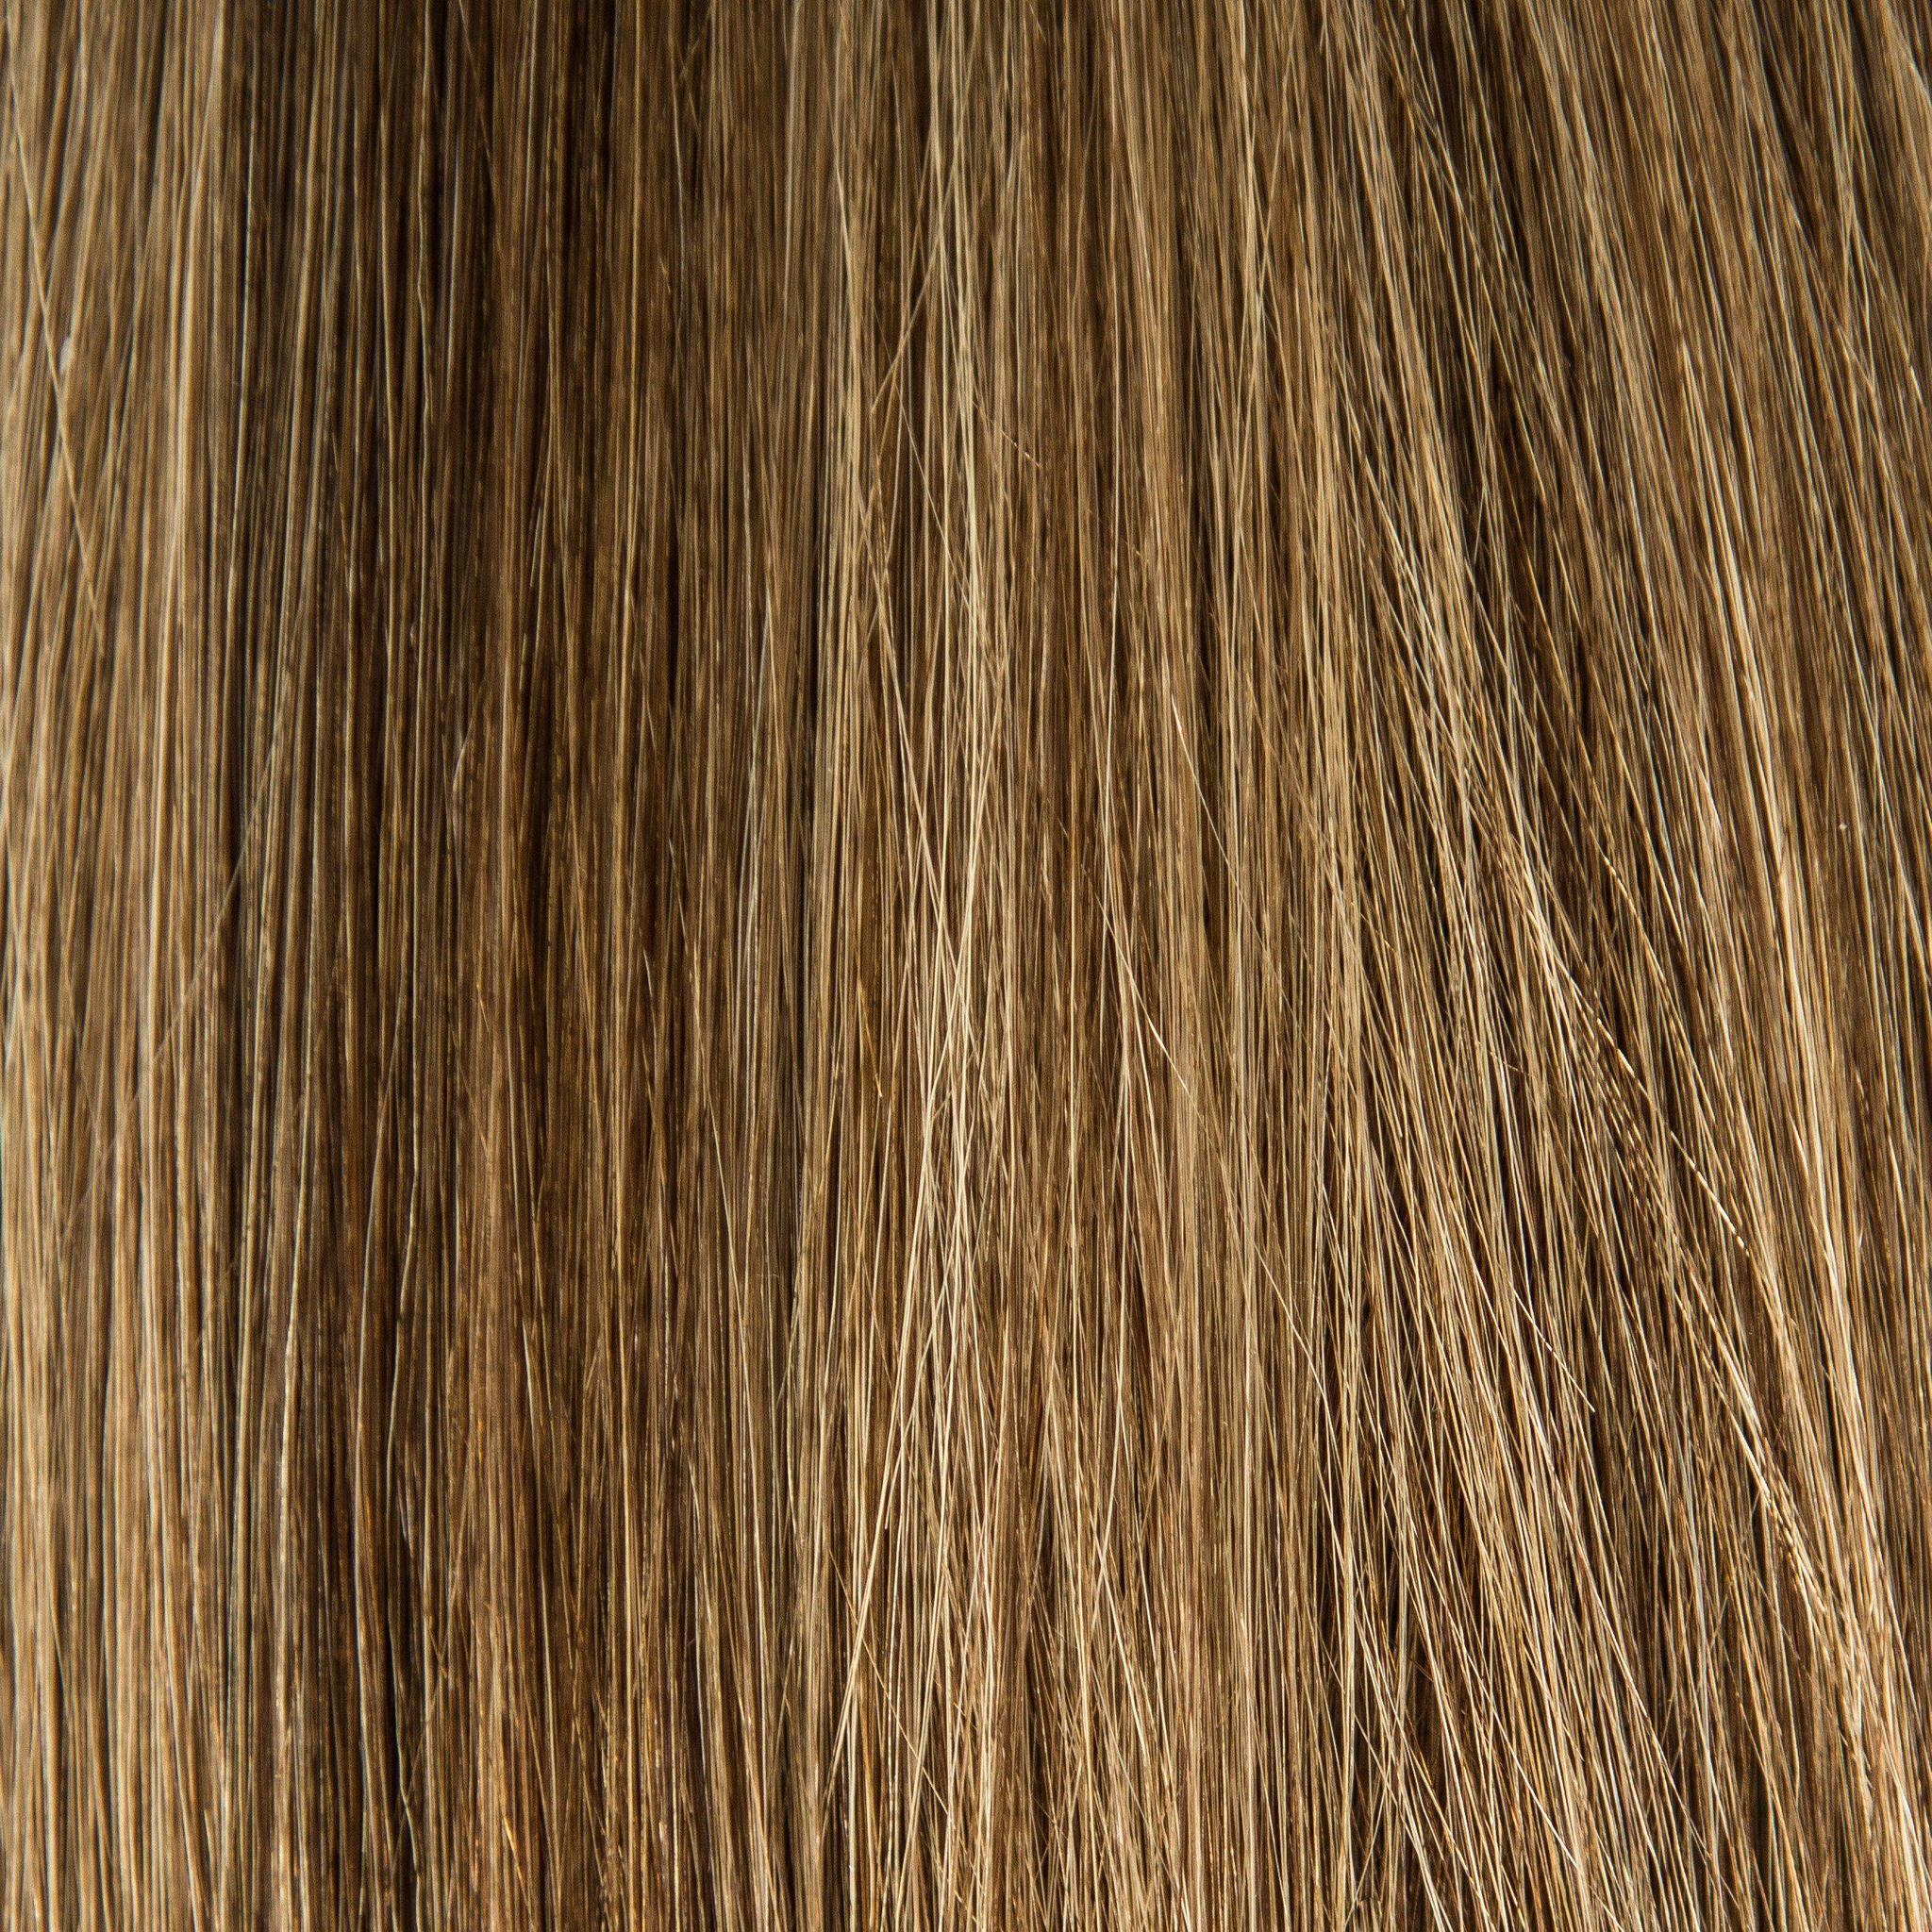 Waved By Laced Hair - Waved By Laced Hair Hand Tied Weft Extensions Dimensional #4/8 (Cappuccino)